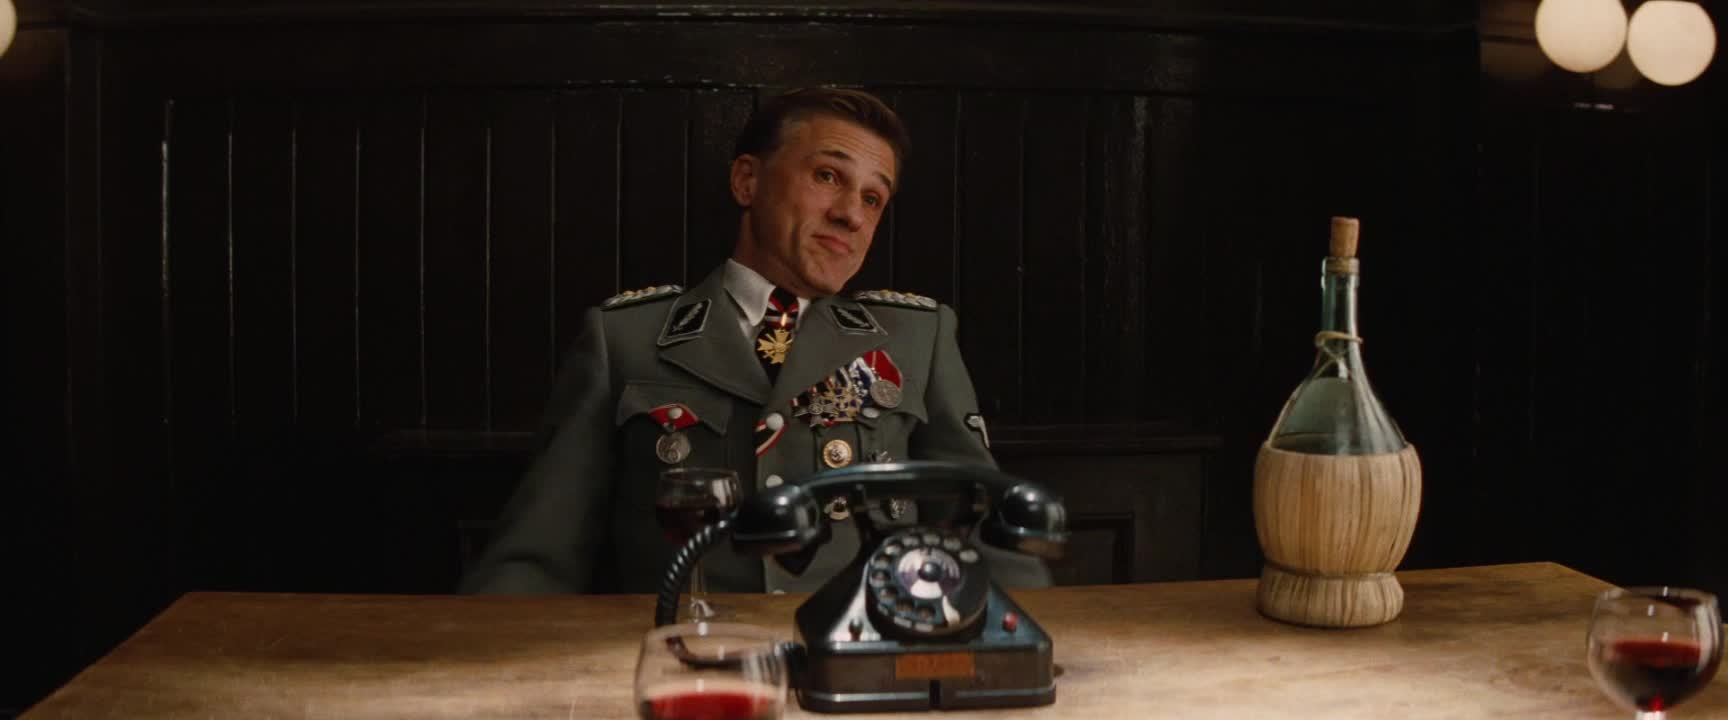 christoph waltz, dunno, dunnow, hans landa, i aint even mad, i don't know, i dunno, idk, inglourious basterds, shrug, whatever, Inglourious Basterds - I ain't even mad GIFs